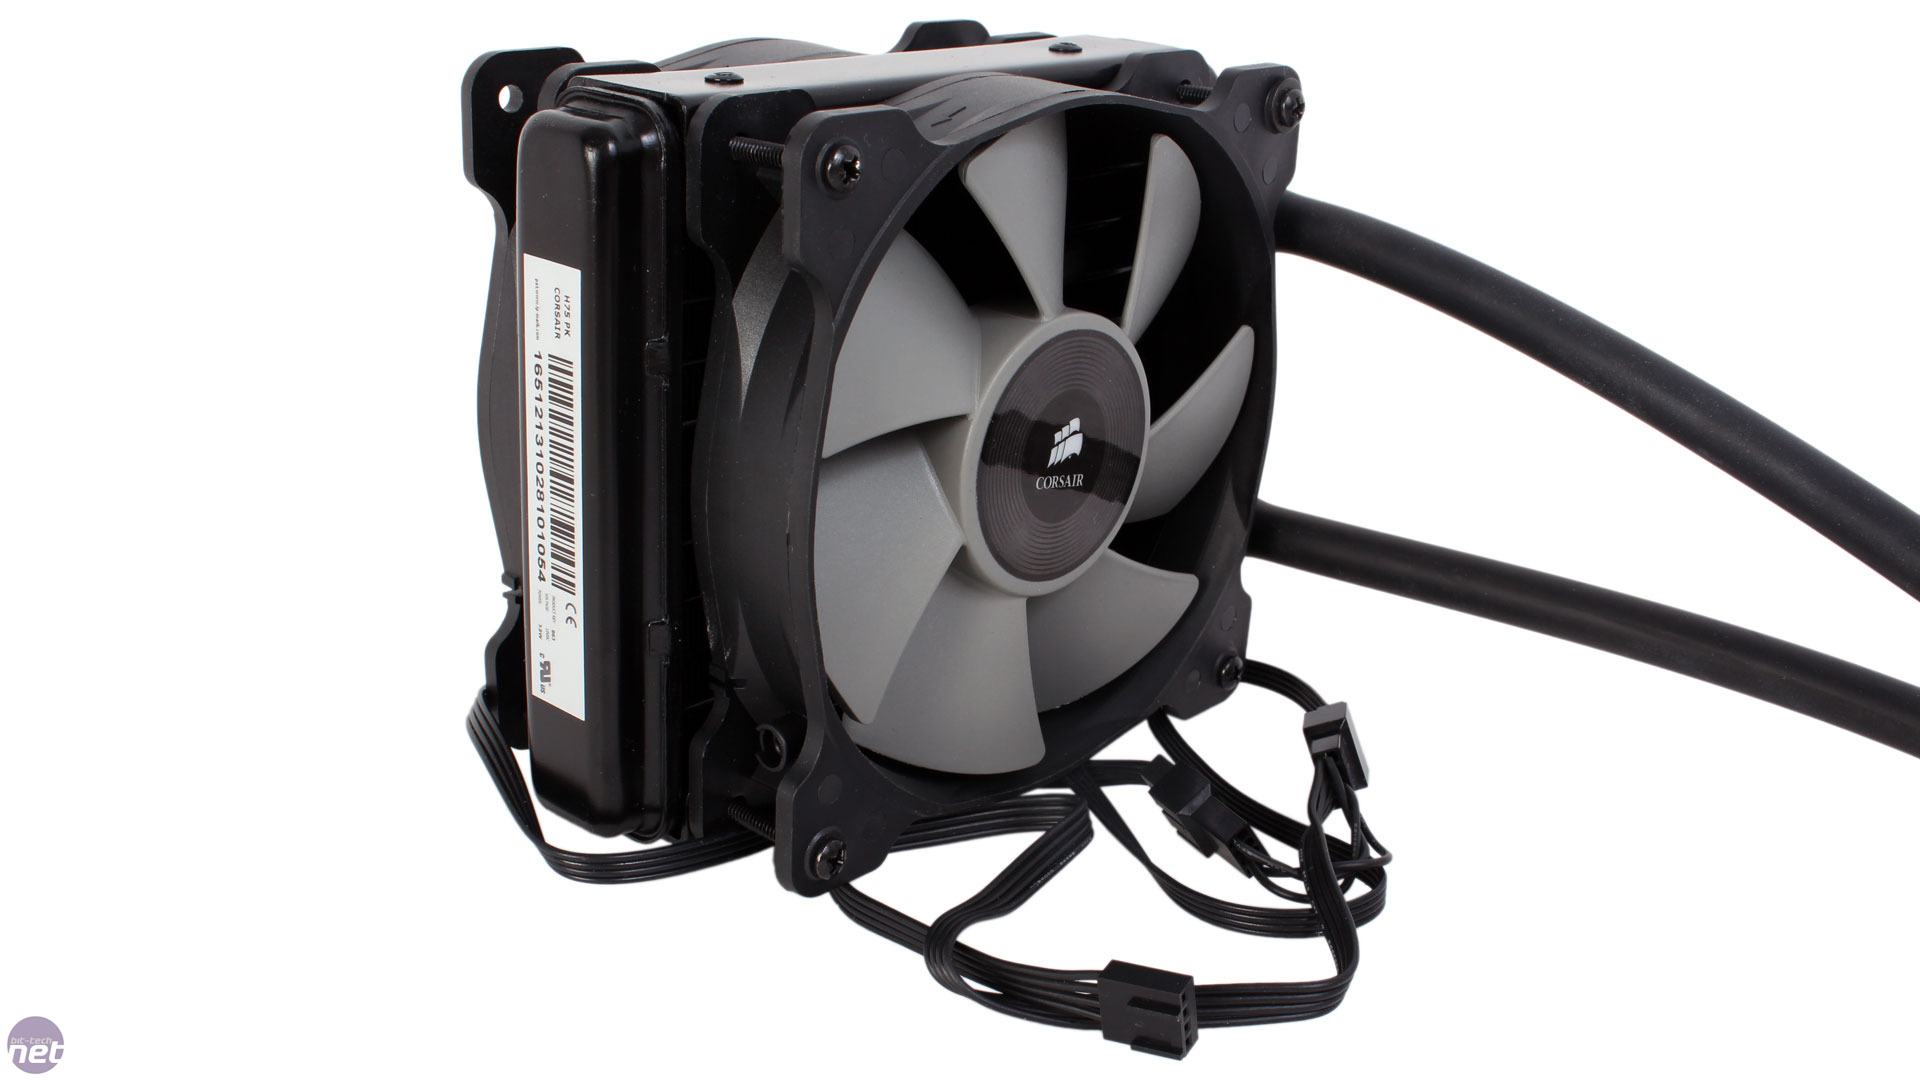 Corsair Hydro H75 Review Series H100i V2 Water Cooler Testing And Results